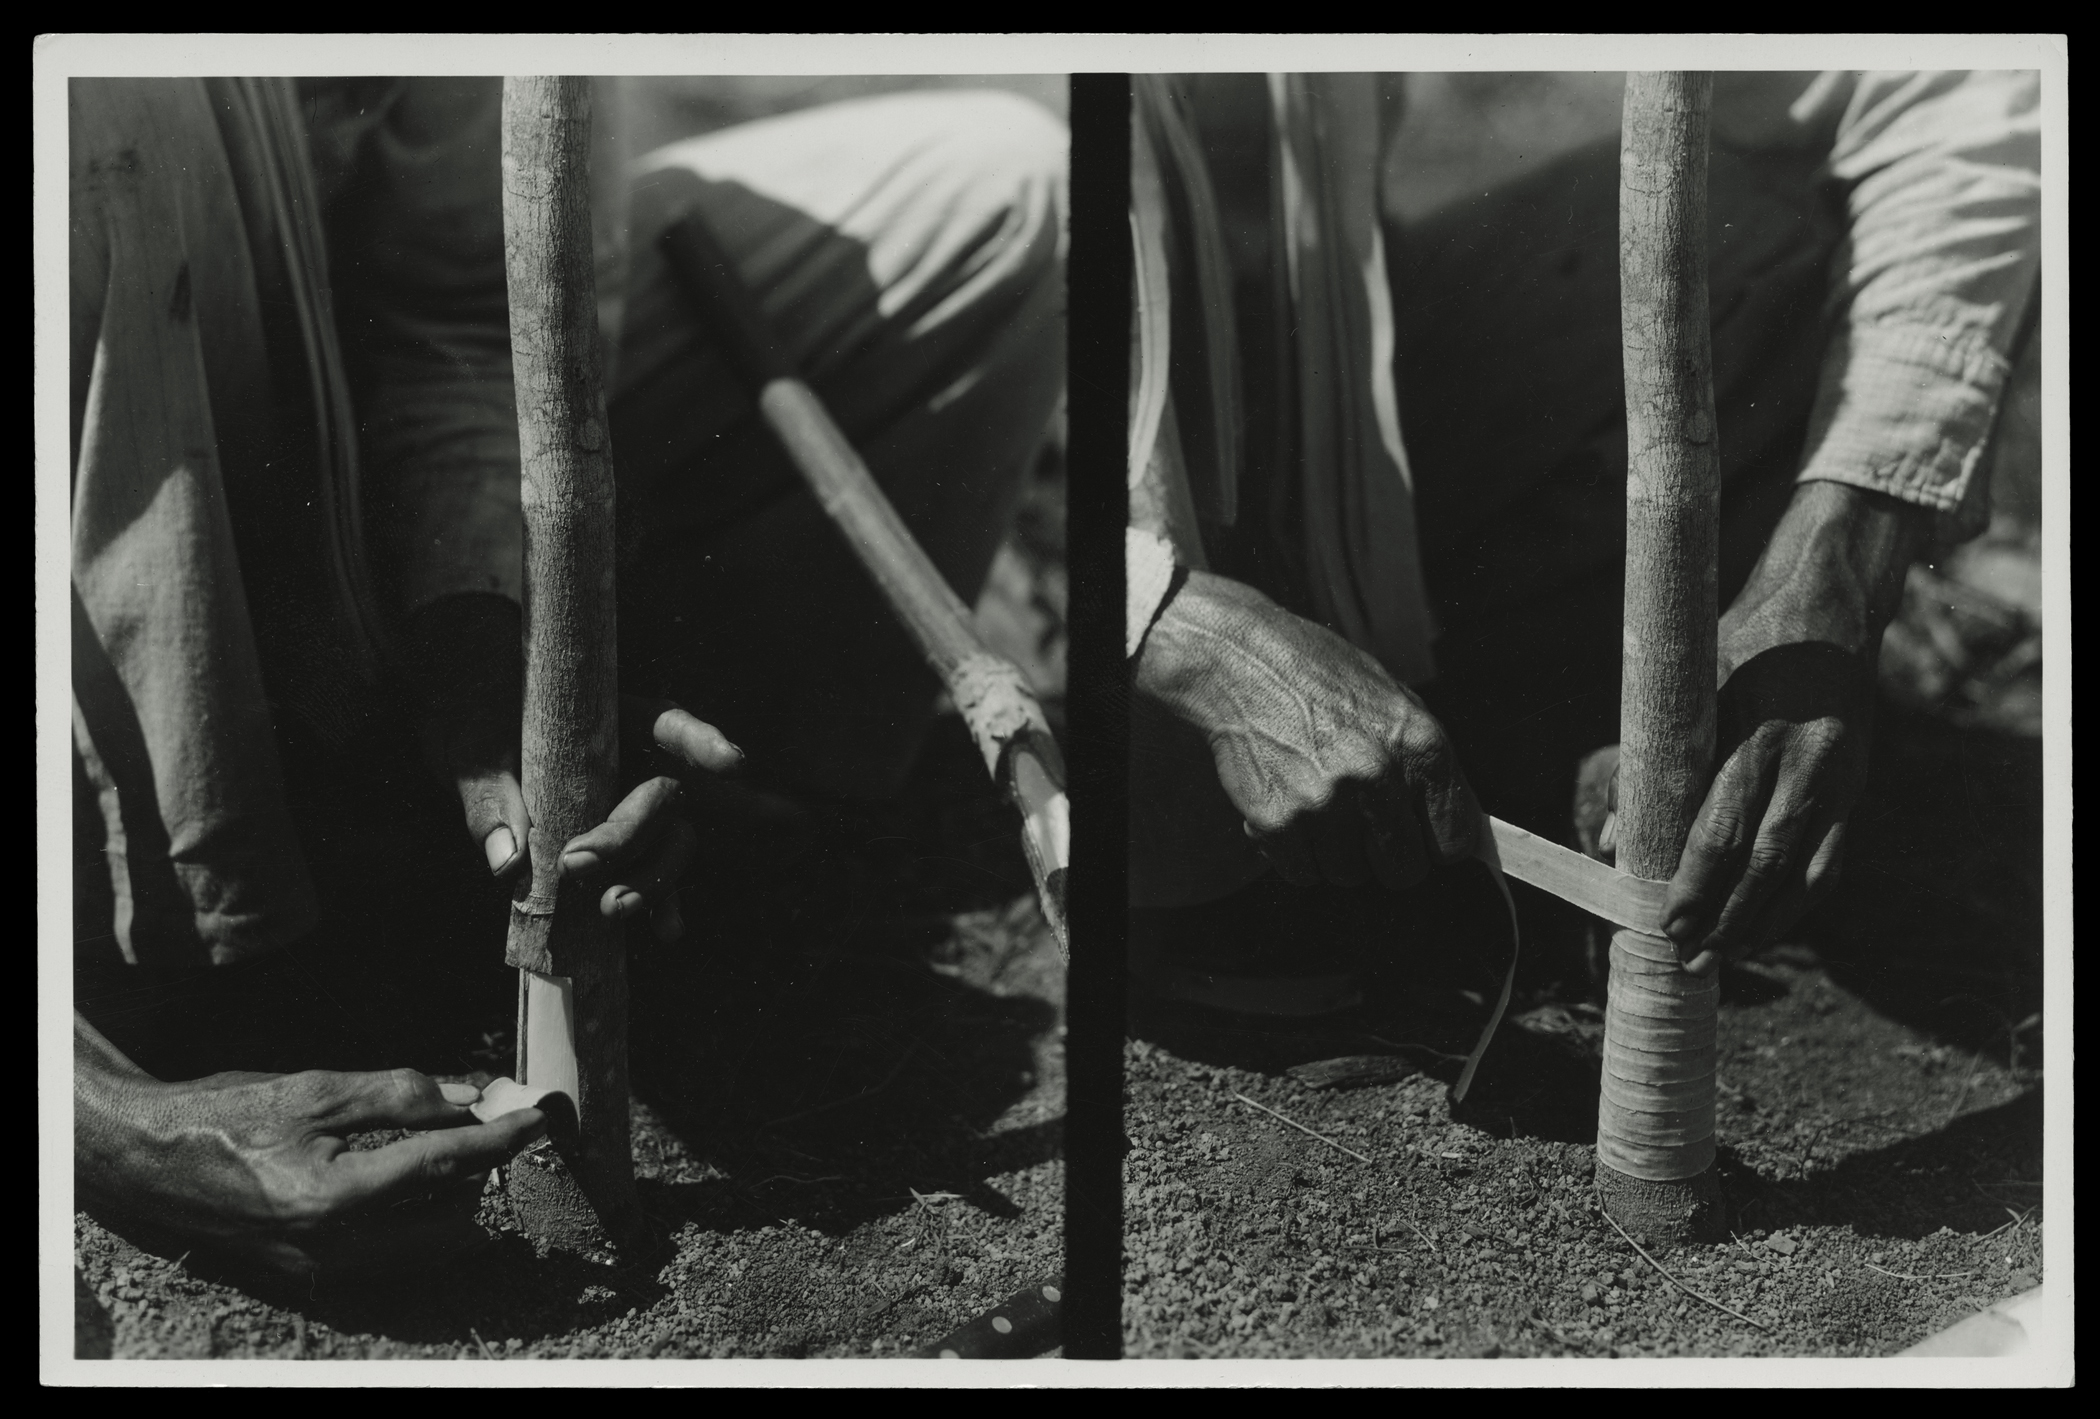 "(research image) ""Two Views of Budding Operations,"" Fordlandia, Brazil (undated). Typed on verso: ""Two views of budding operations."" 4.5 x 6"" gelatin silver fiber print. Creator: Companhia Ford Industrial Do Brasil Ford Motor Company. From the Collections of The Henry Ford."